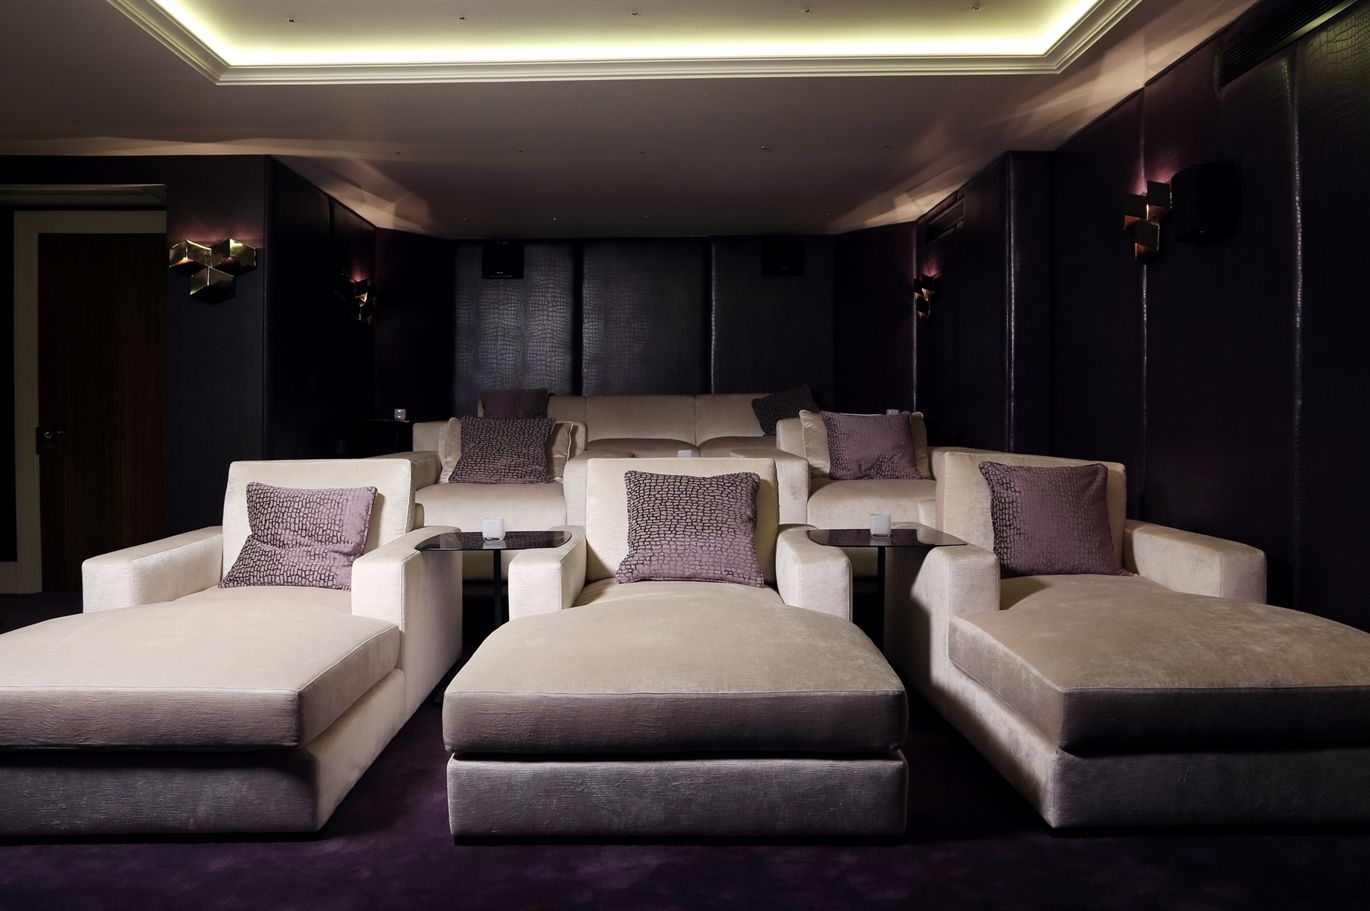 Cinema room más